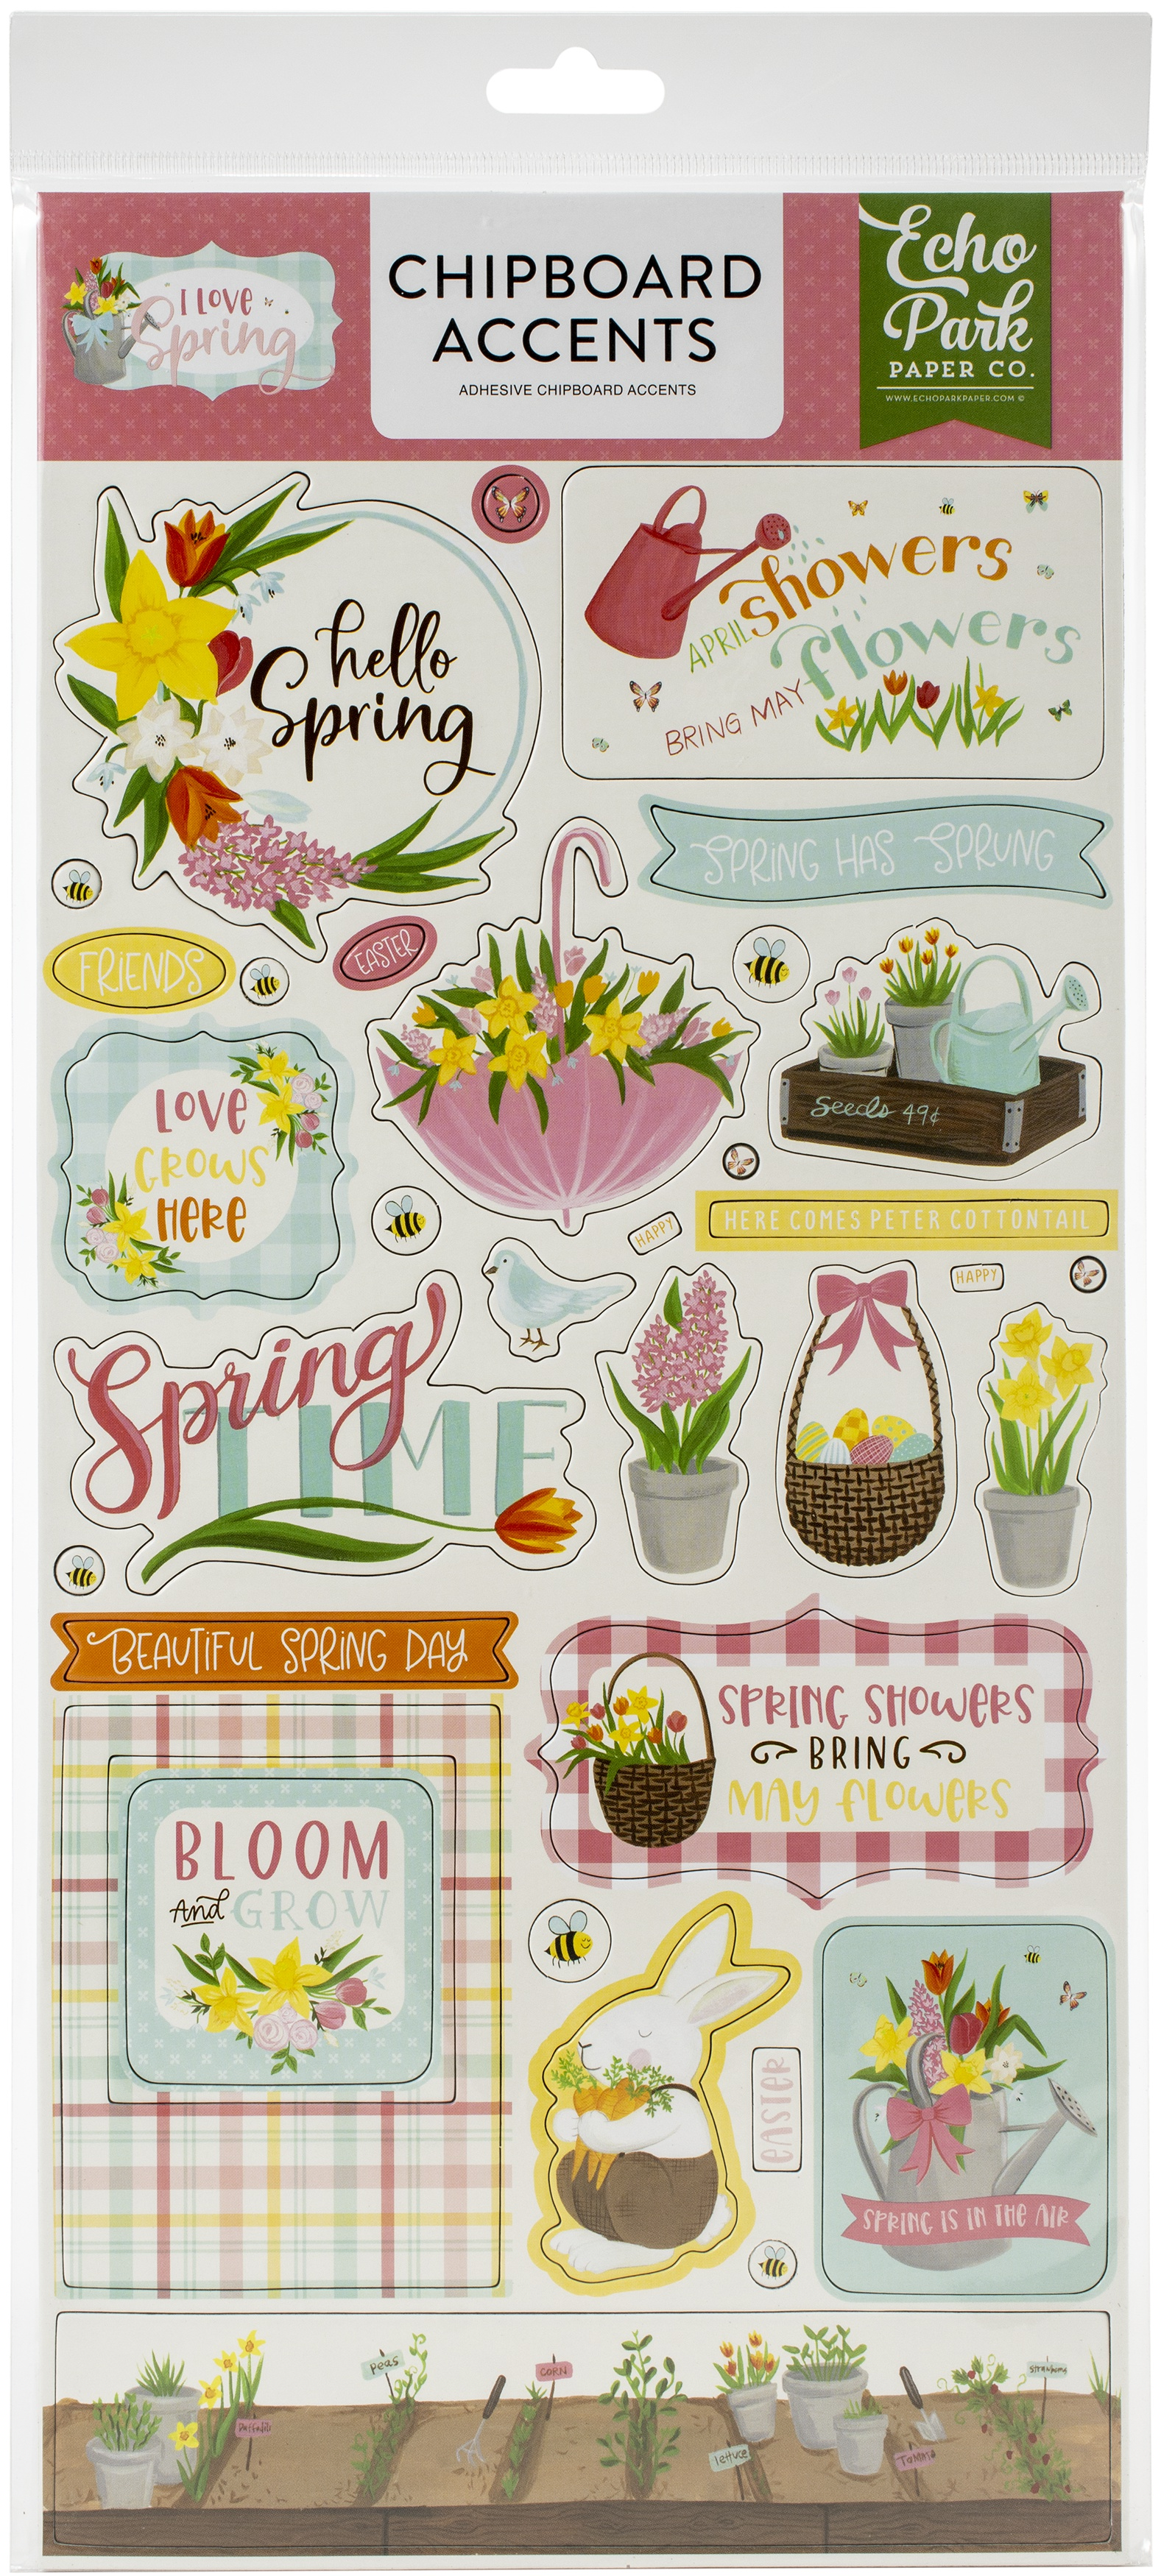 I Love Spring - Chipboard Accents